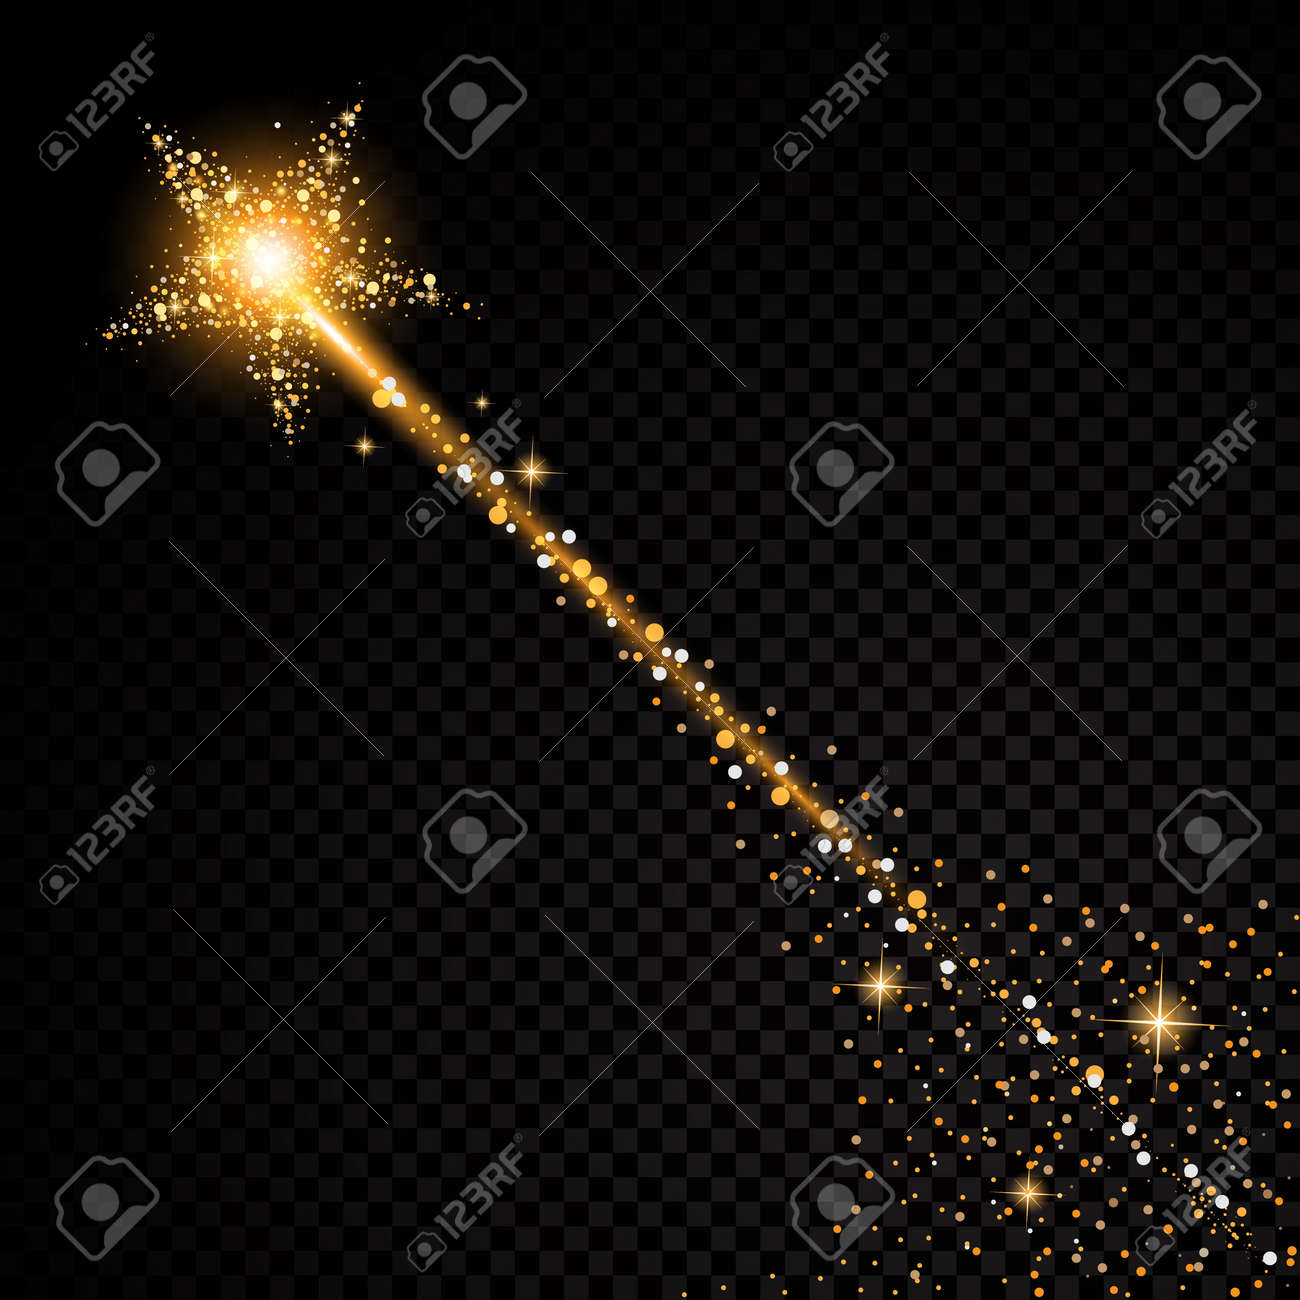 Gold glitter bright vector transparent background golden sparkles - Gold Glittering Star Dust Trail Sparkling Particles On Transparent Background Stock Vector 57887963